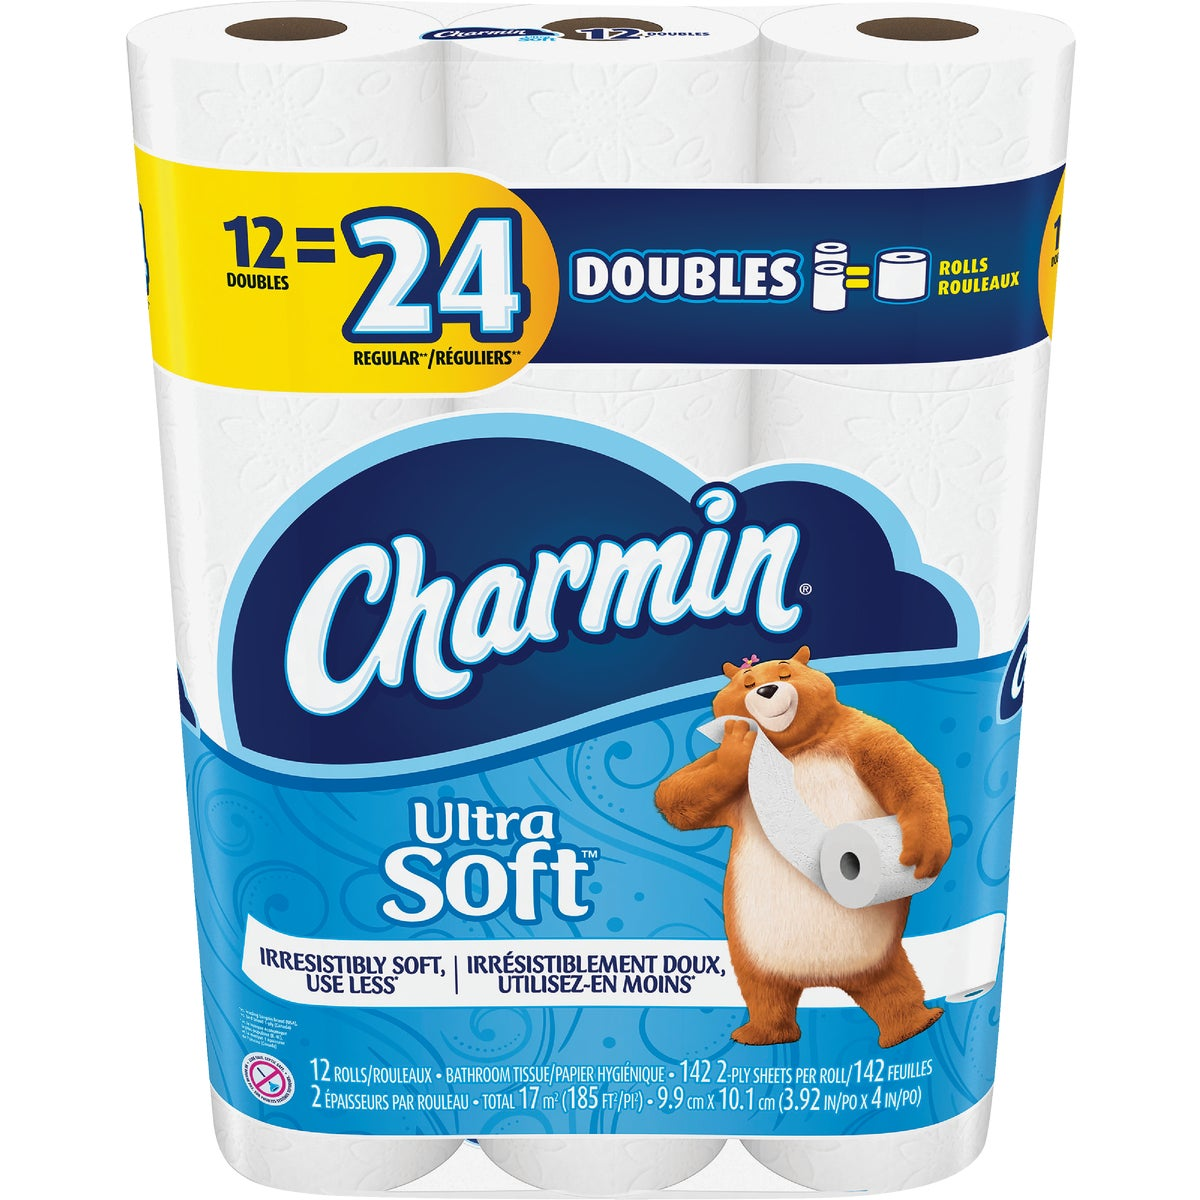 12 DBL RL SOFT CHARMIN - 86782 by Procter & Gamble